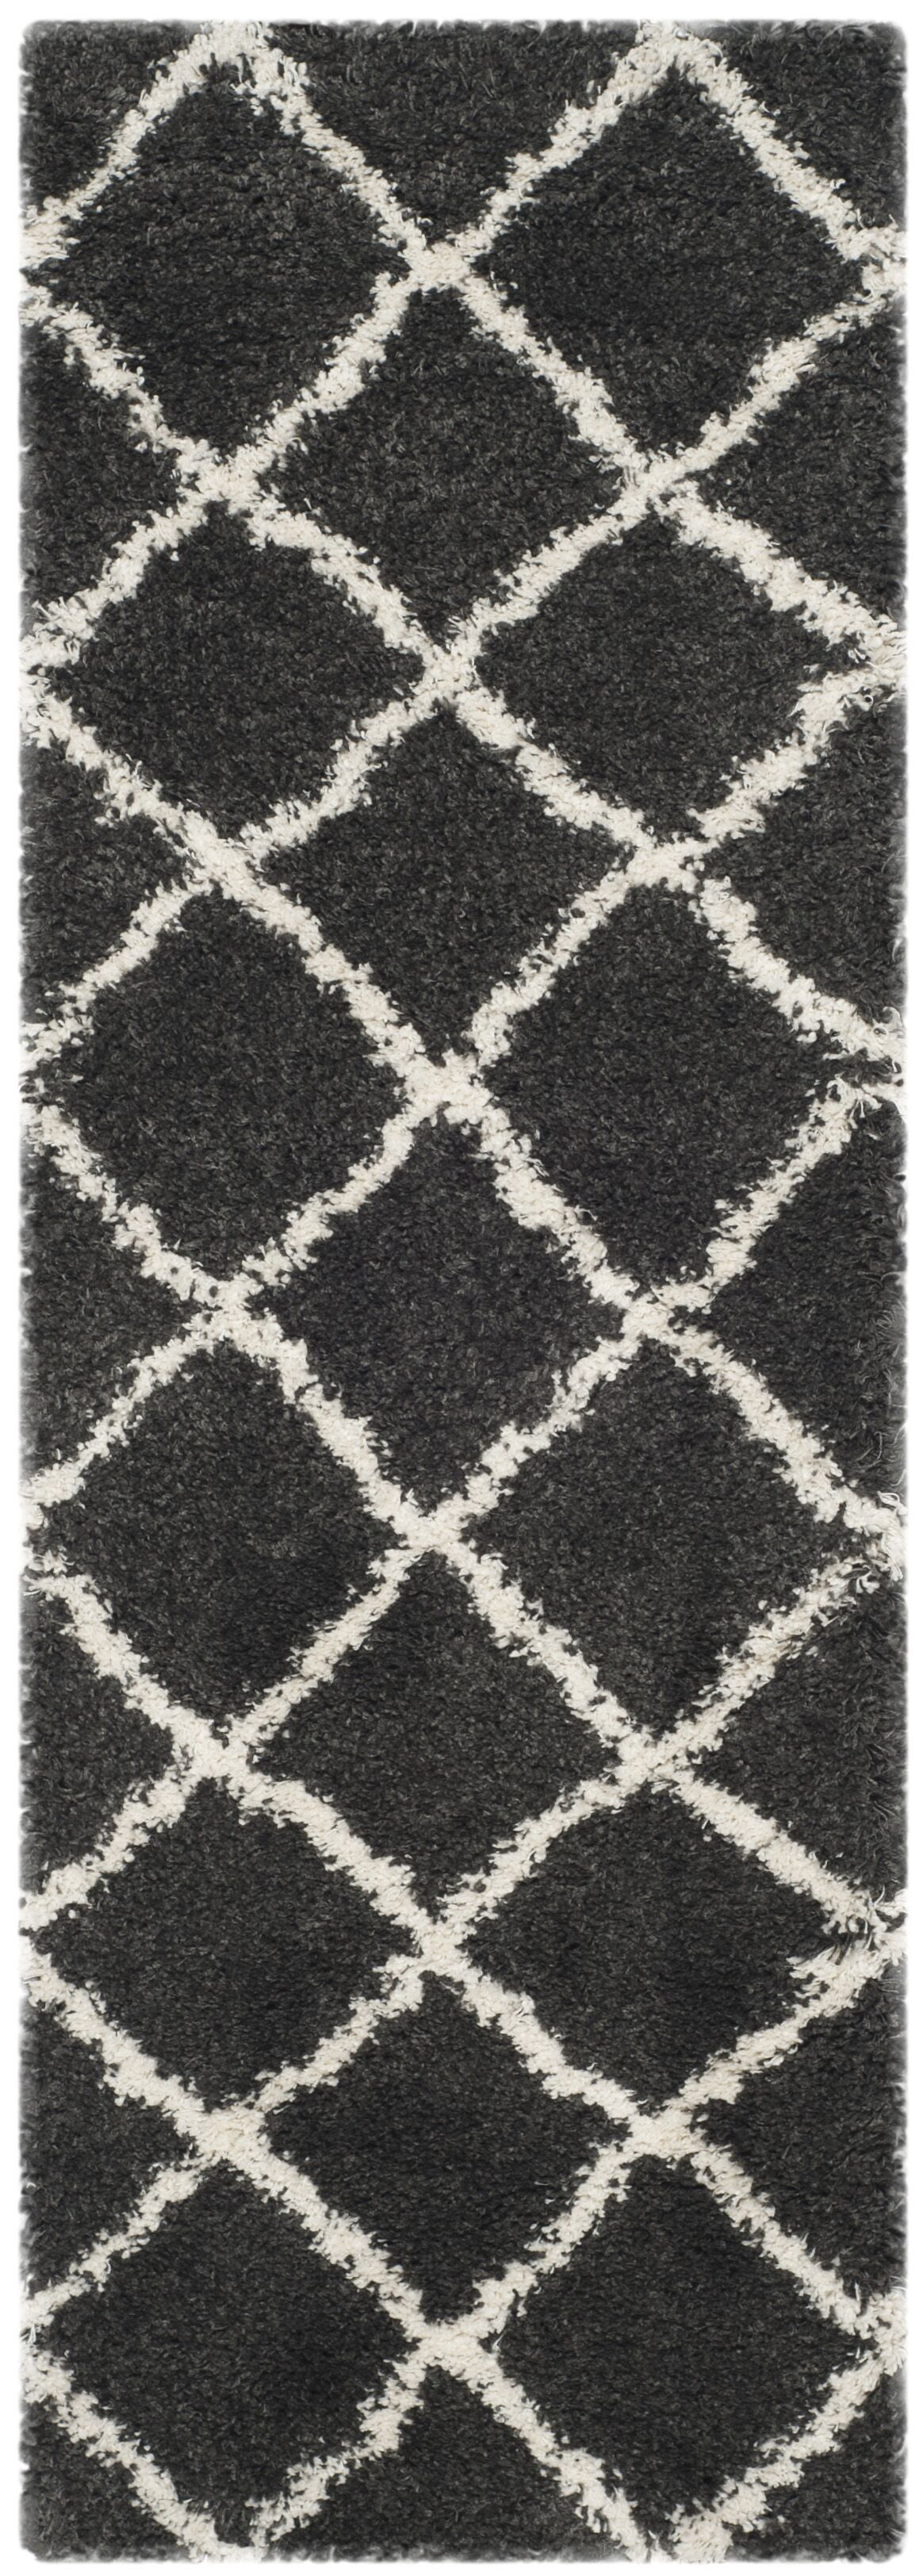 Cherry Street Charcoal / Ivory Area Rug Rug Size: Runner 2'3